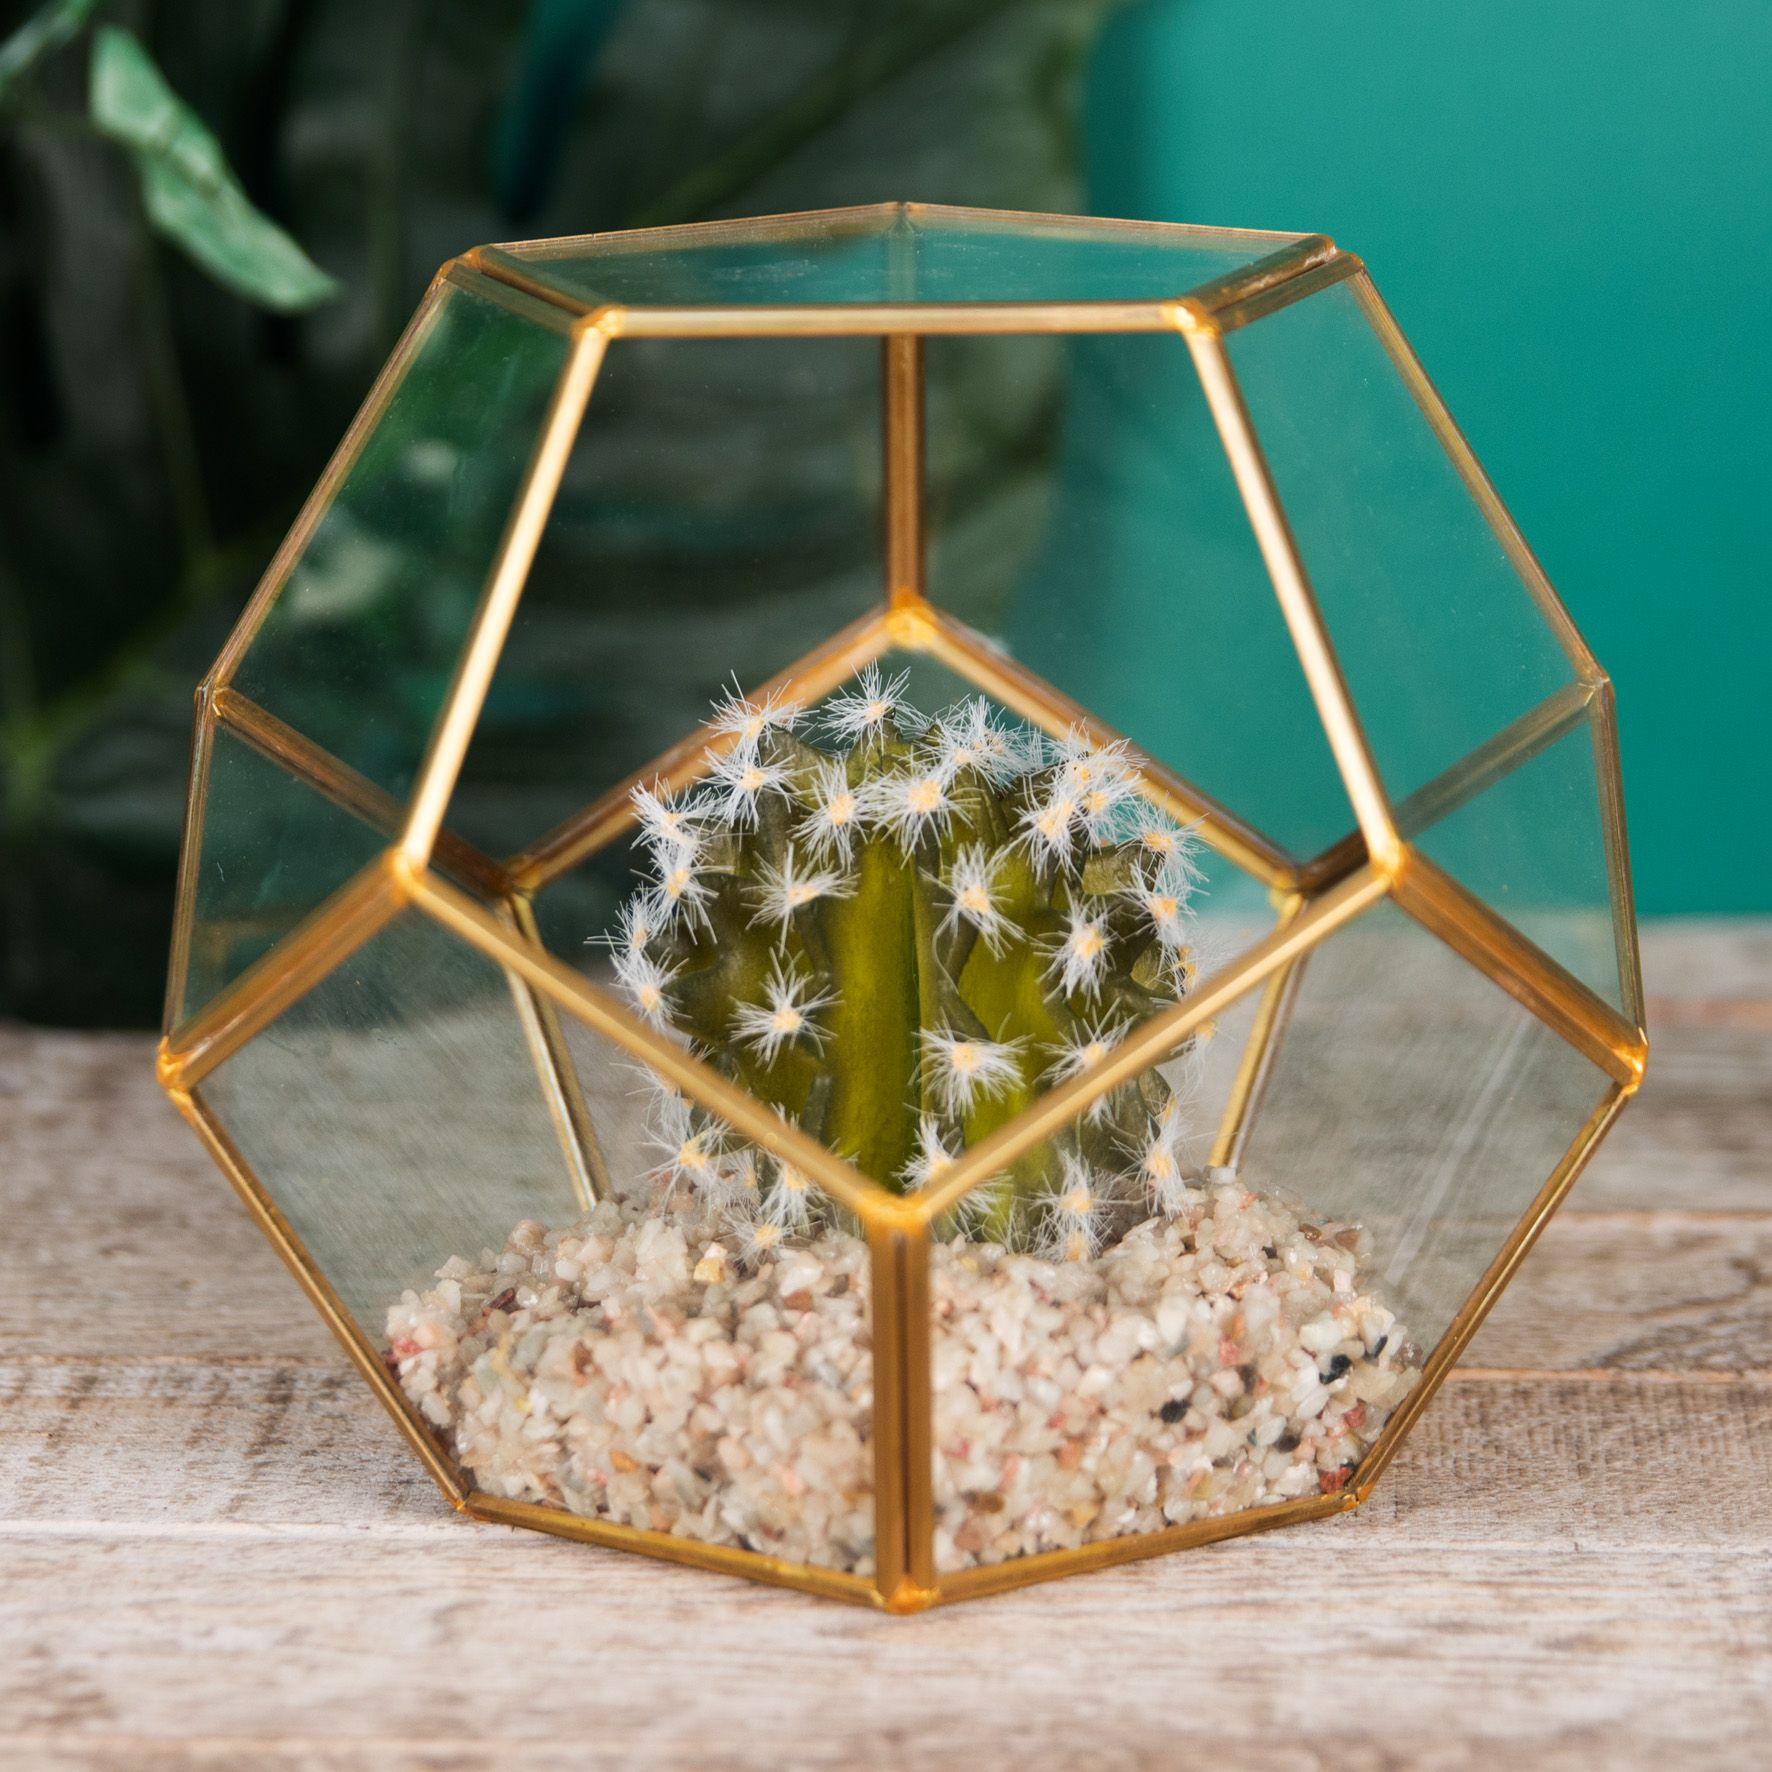 Glass Hexagonal Planter With Artificial Cactus Succulent Terrarium Style Home Accessory